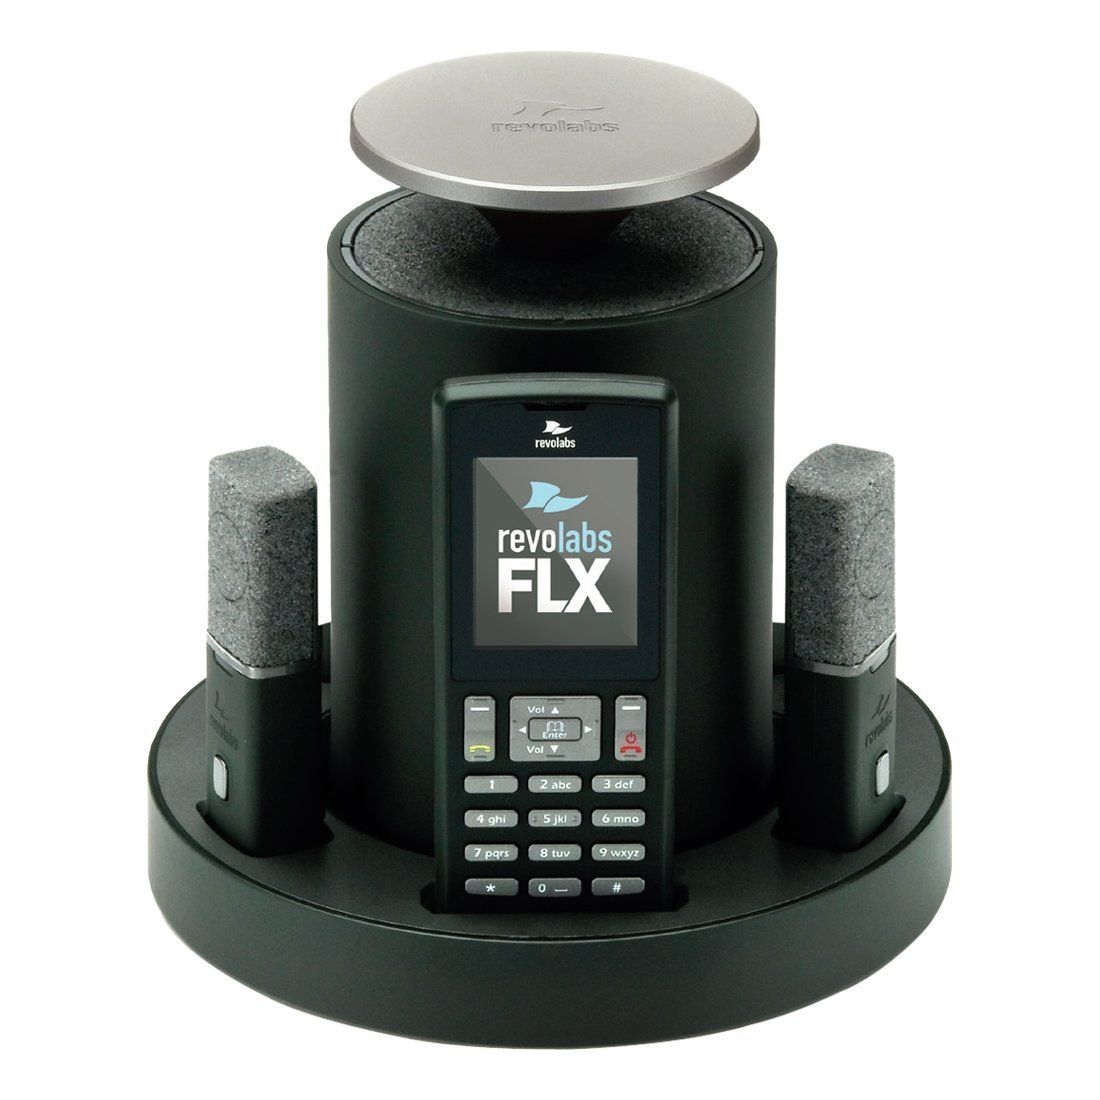 revolabs flx 2 voip with one omni one wearable microphone connect to computer usb. Black Bedroom Furniture Sets. Home Design Ideas